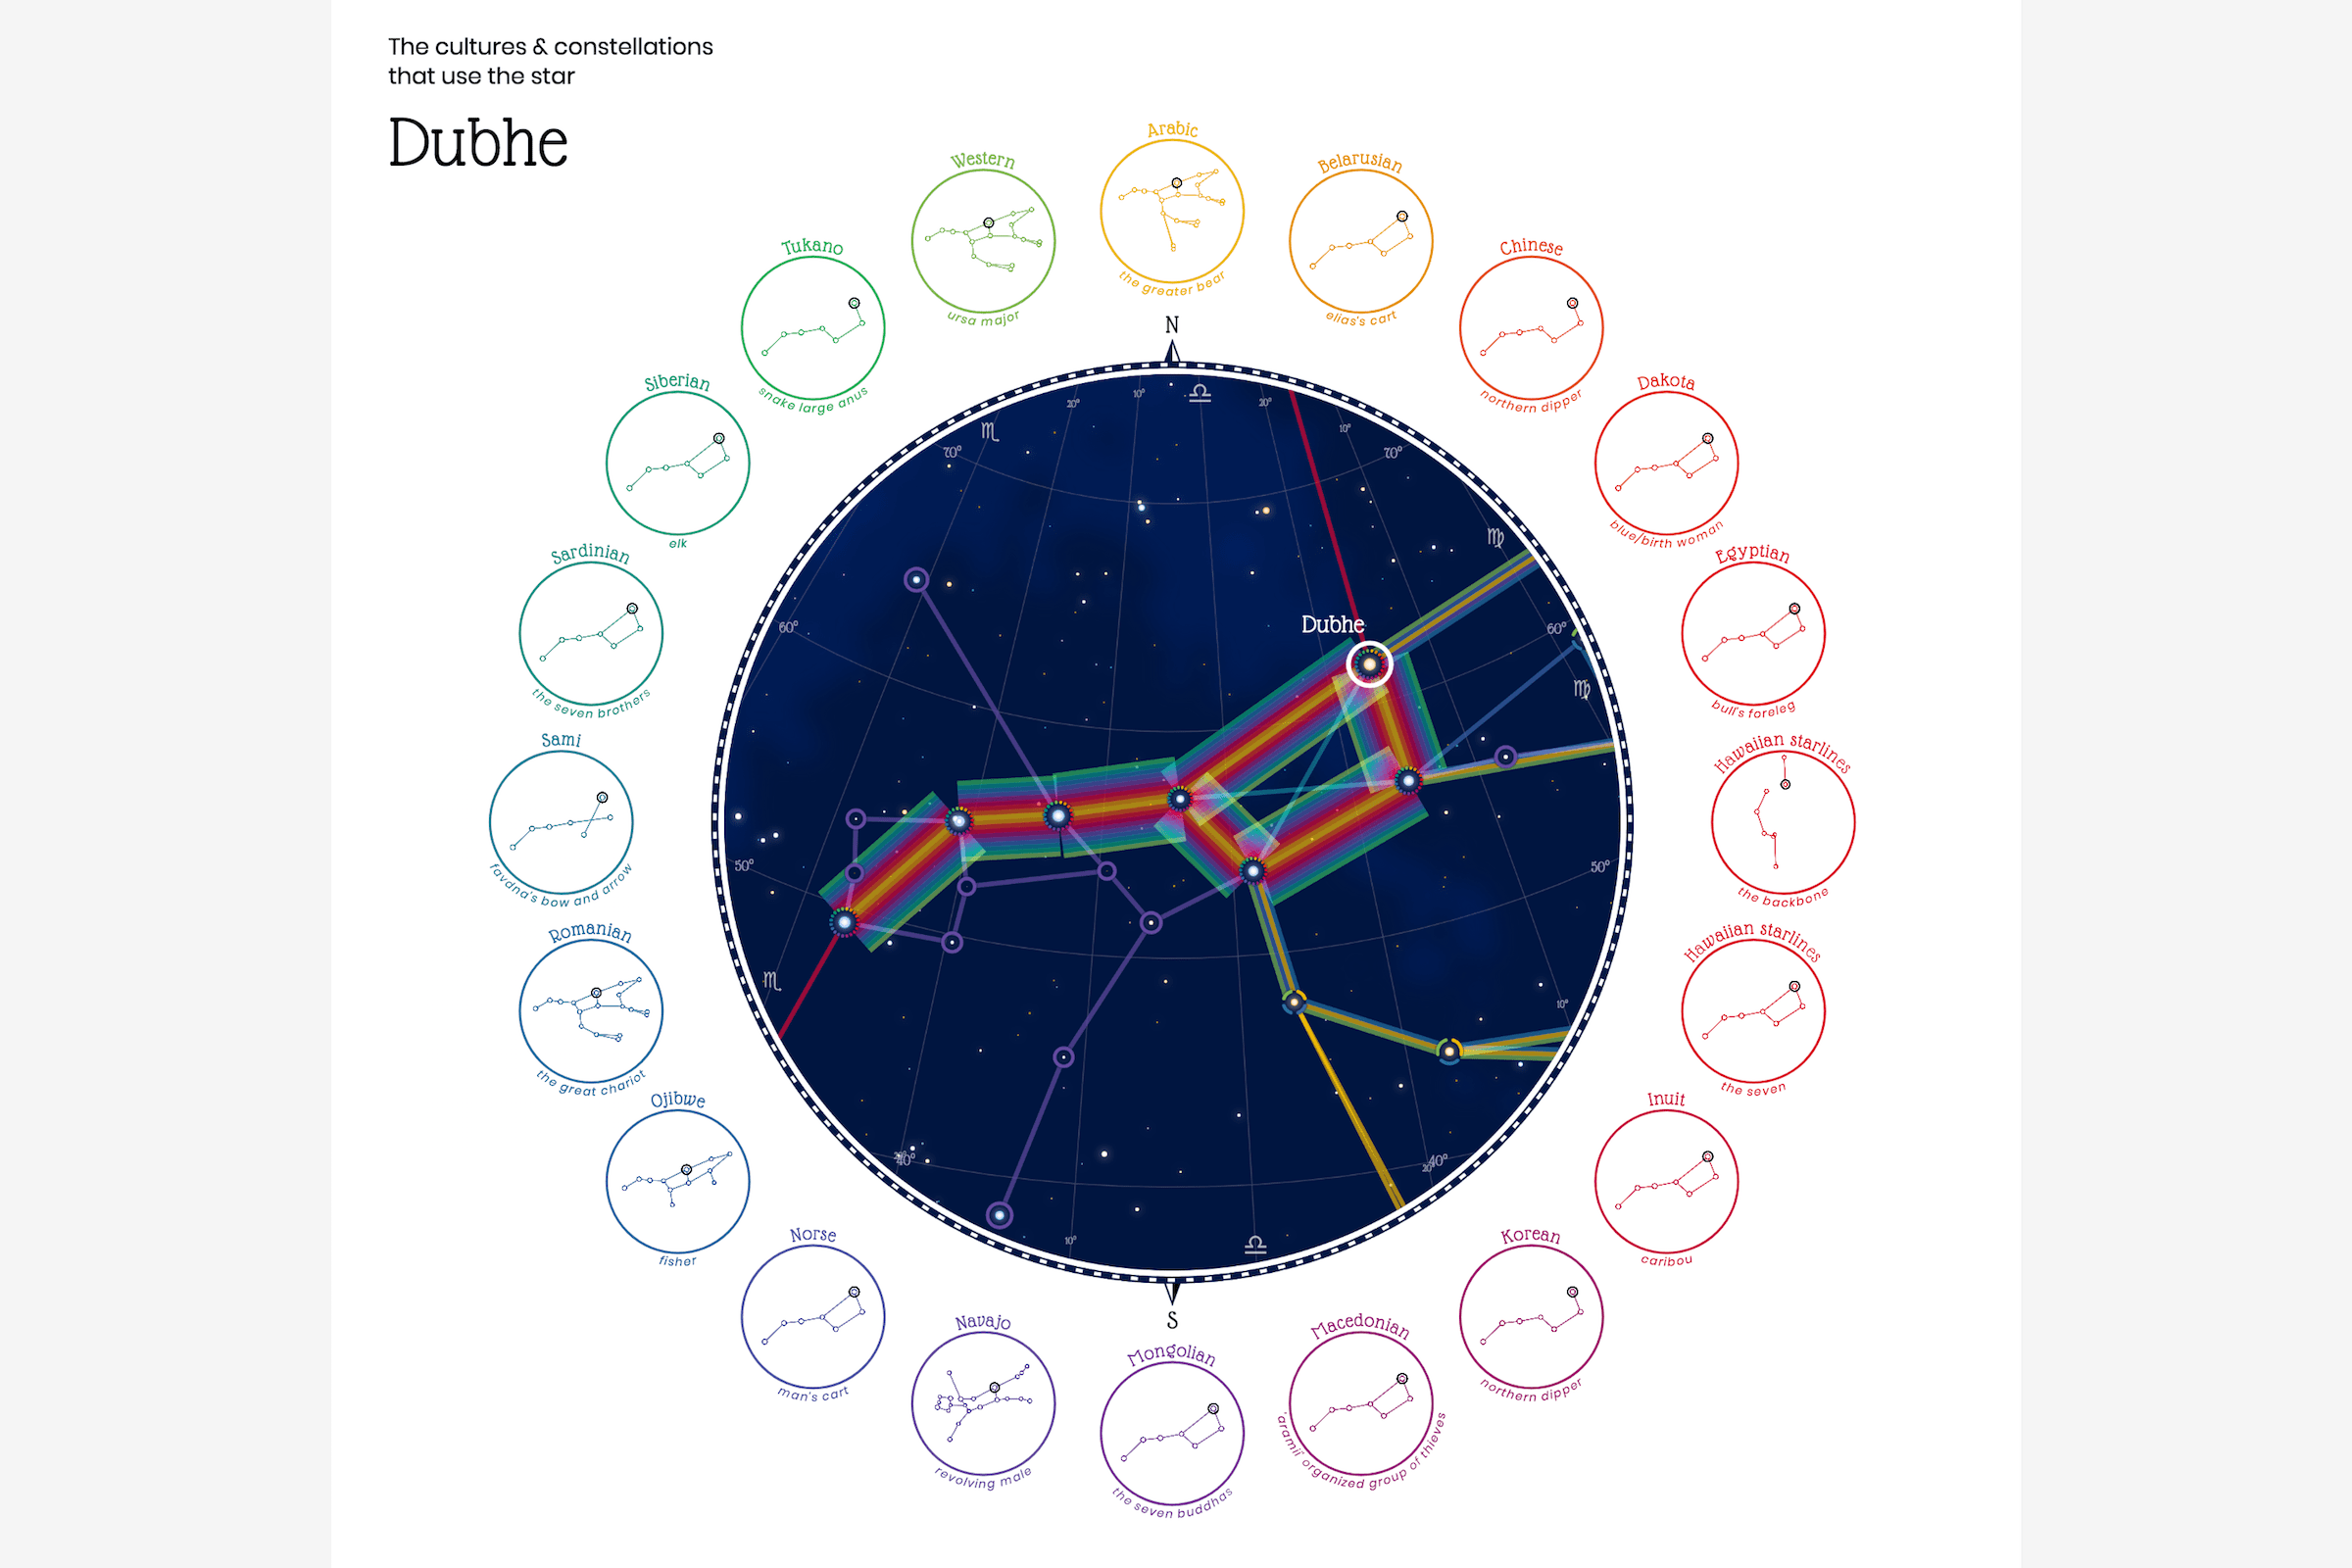 The circular sky map showing the star Dubhe